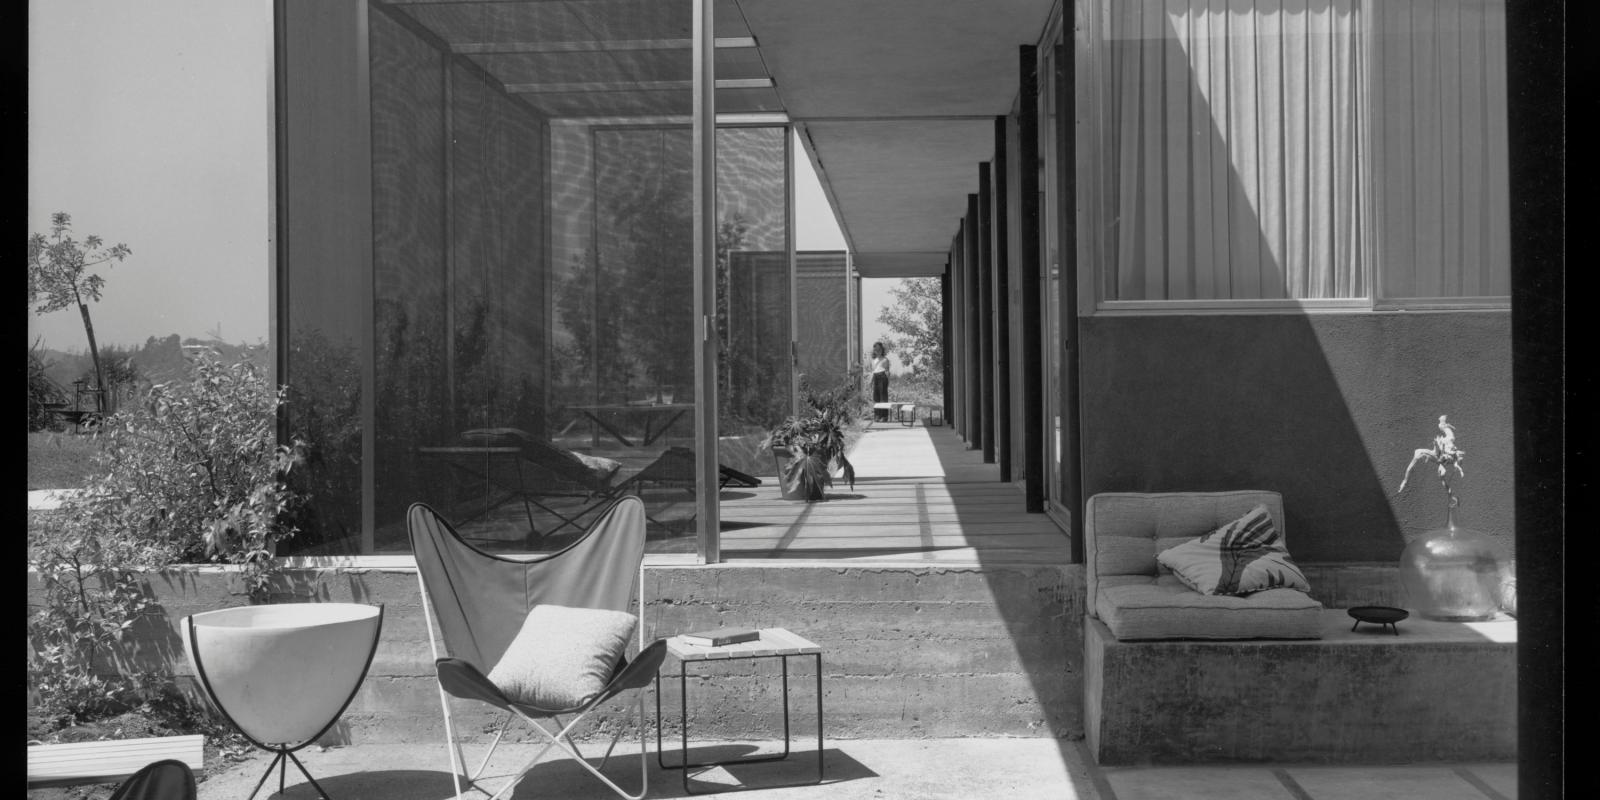 Exterior of Shulman House, 1950 (World Heritage Site). © J. Paul Getty Trust. Getty Research Institute, Los Angeles (2004.R.10)